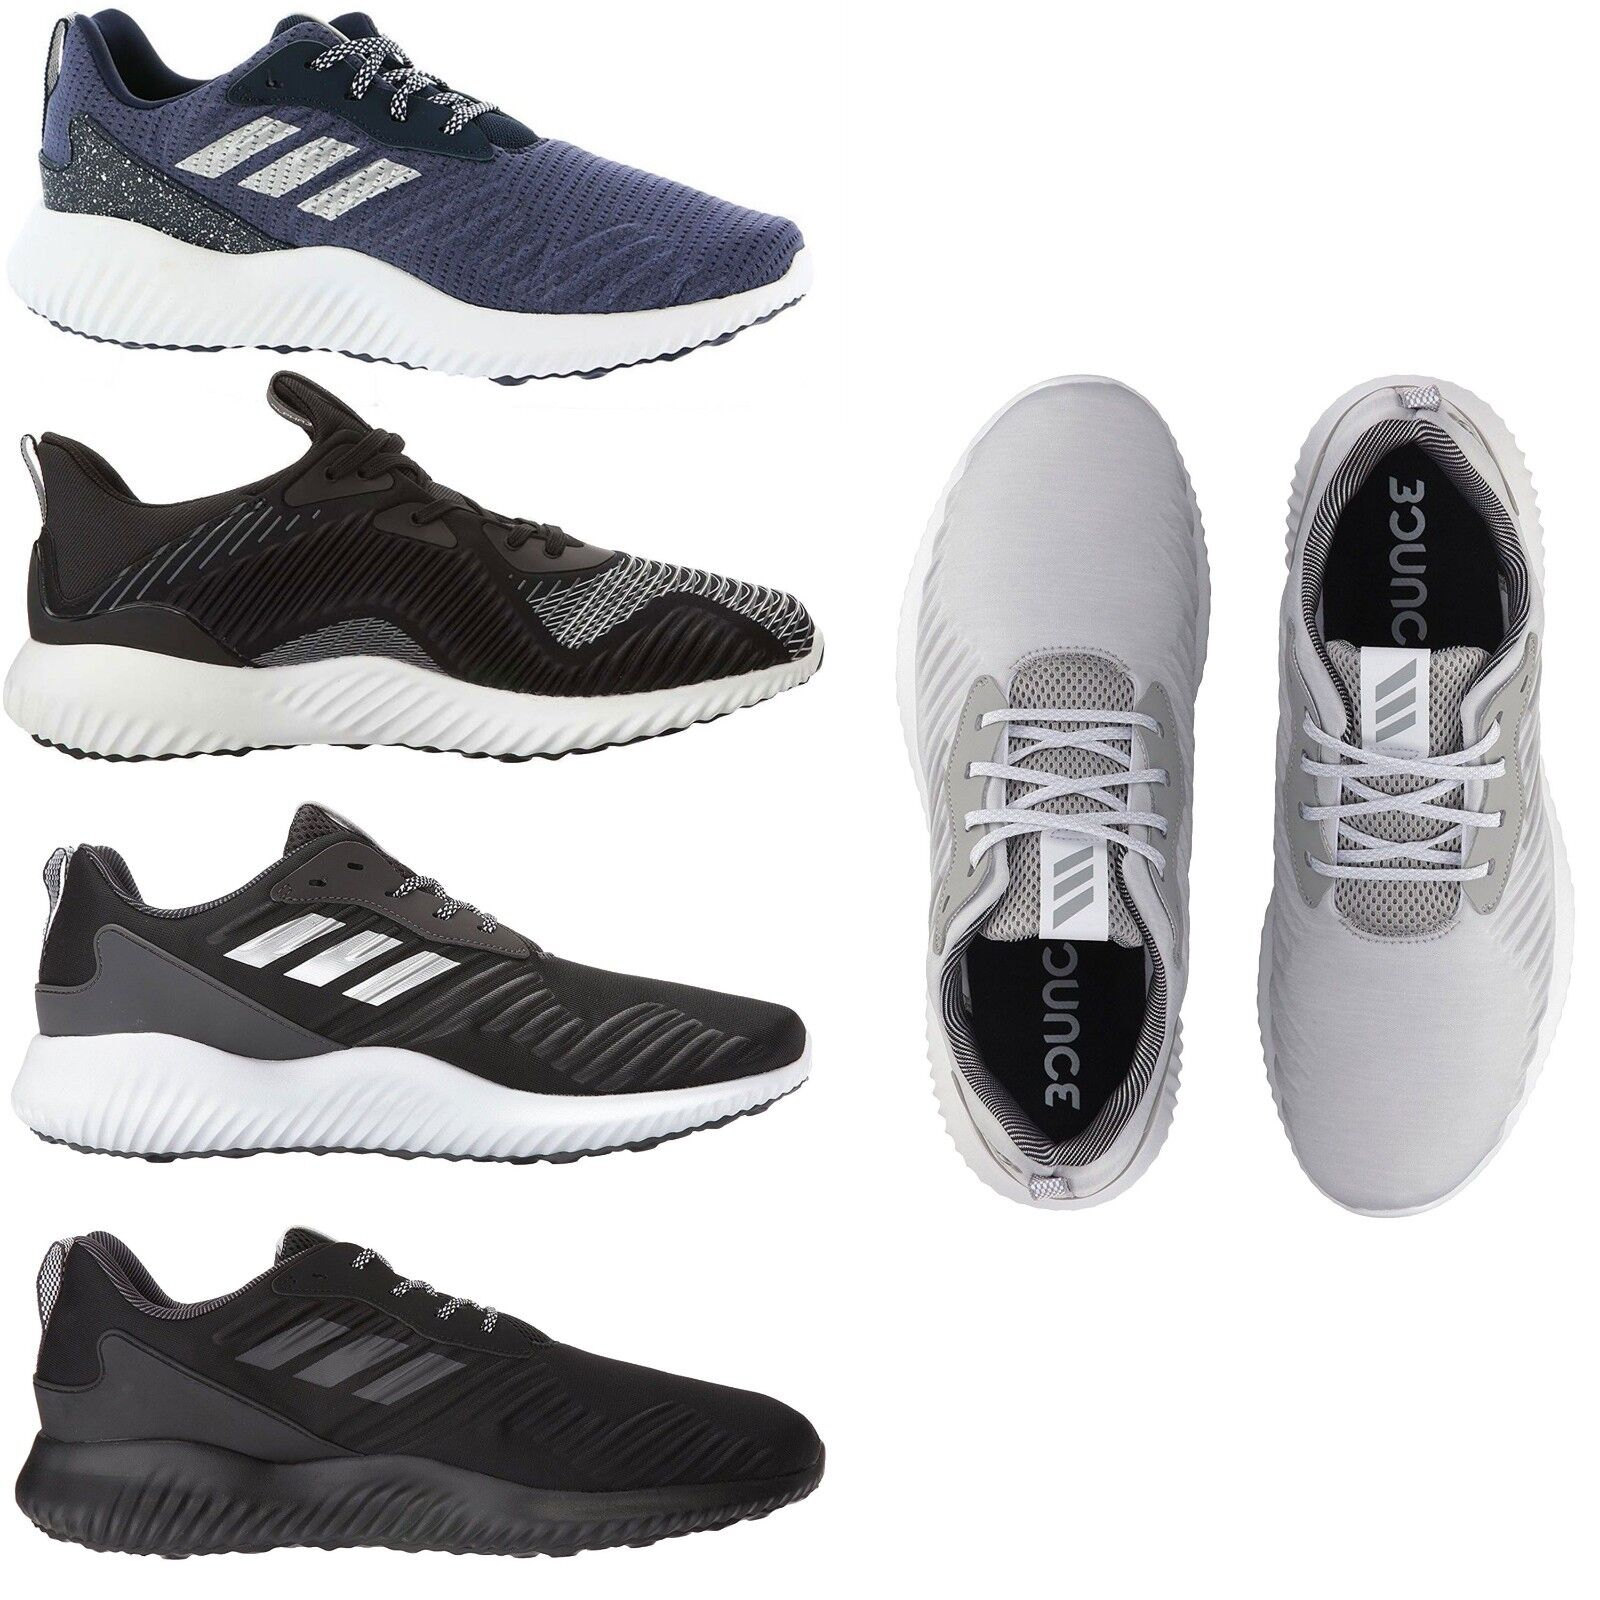 Adidas Men's Athletic Alphabounce Running Cross Training Shoes Sneakers NEW